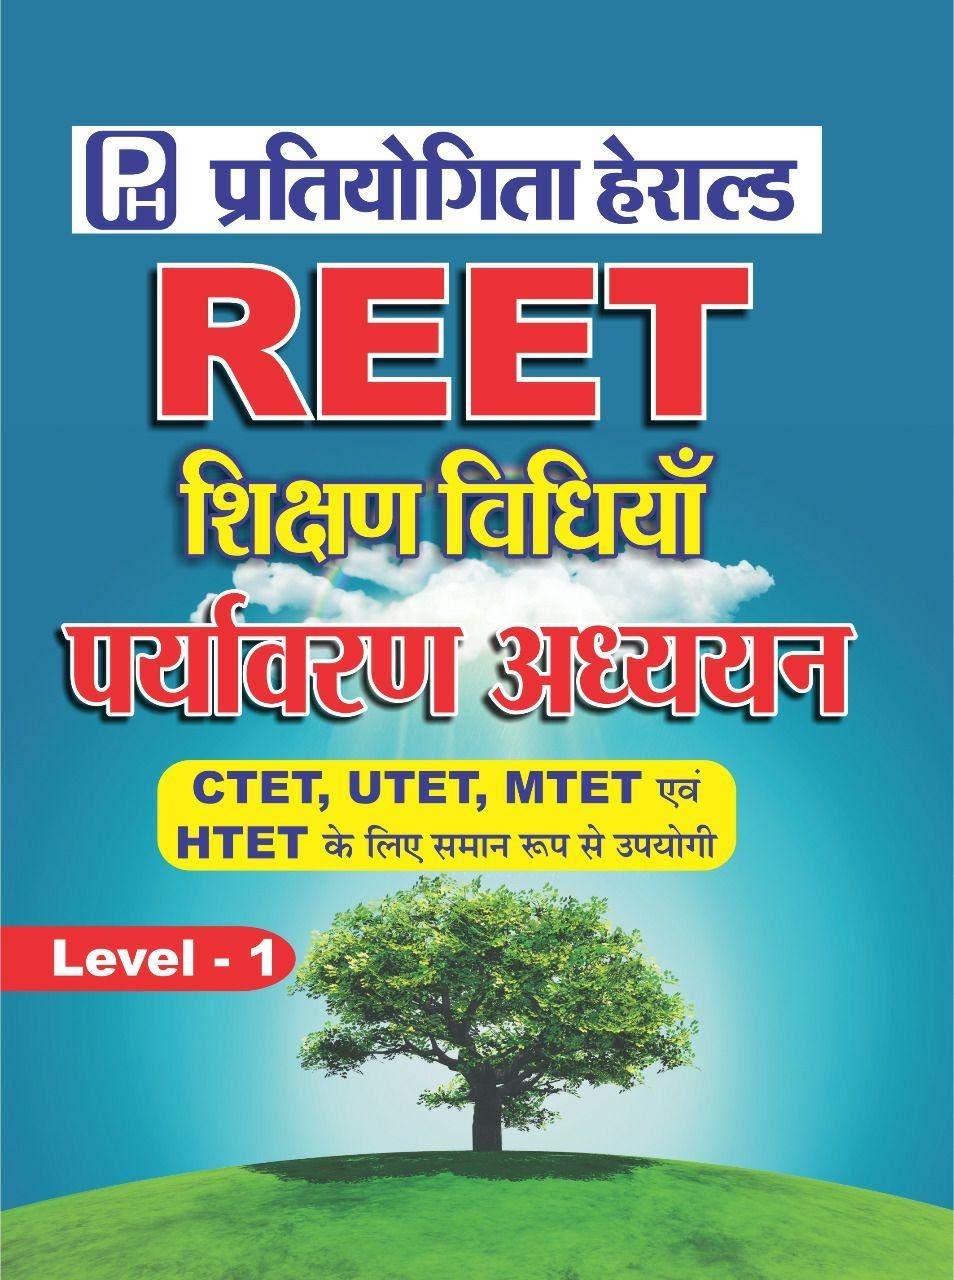 Herald REET Paryavaran Adhyan (Environment Studies) LEVEL1 Shikshan Vidhiyan Teaching Method